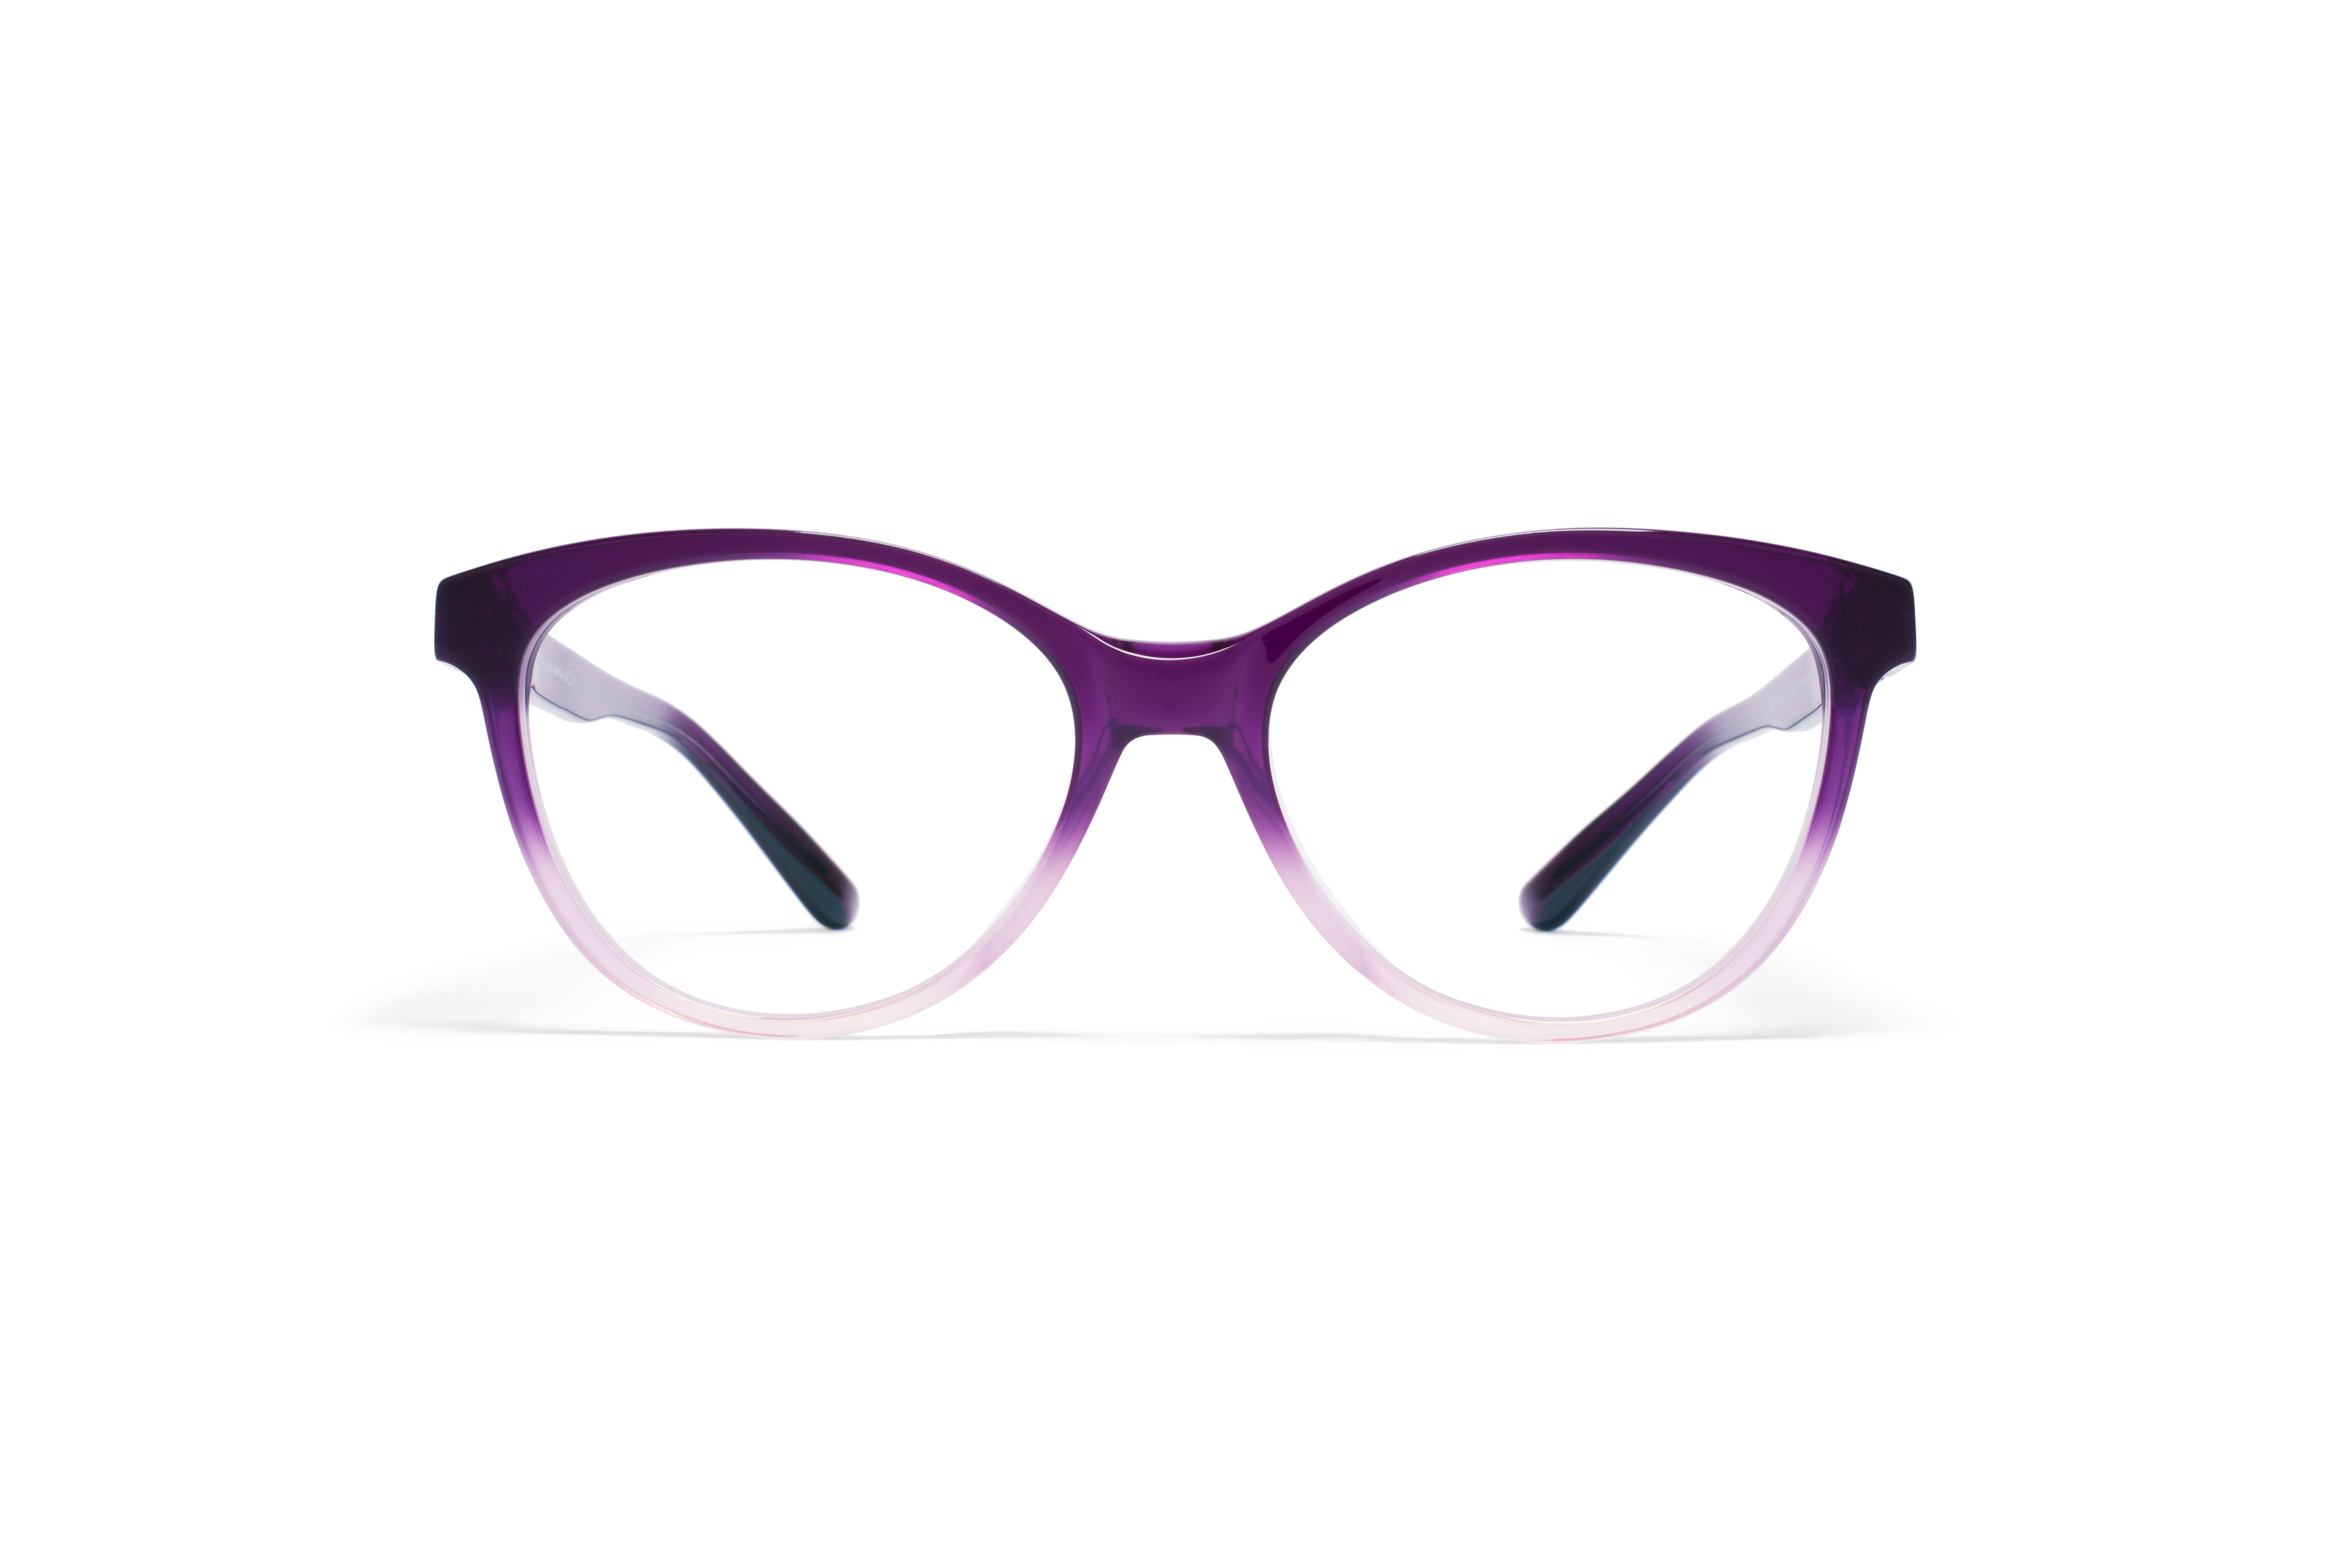 MYKITA No2 Rx Bianca Purple Progress Clear